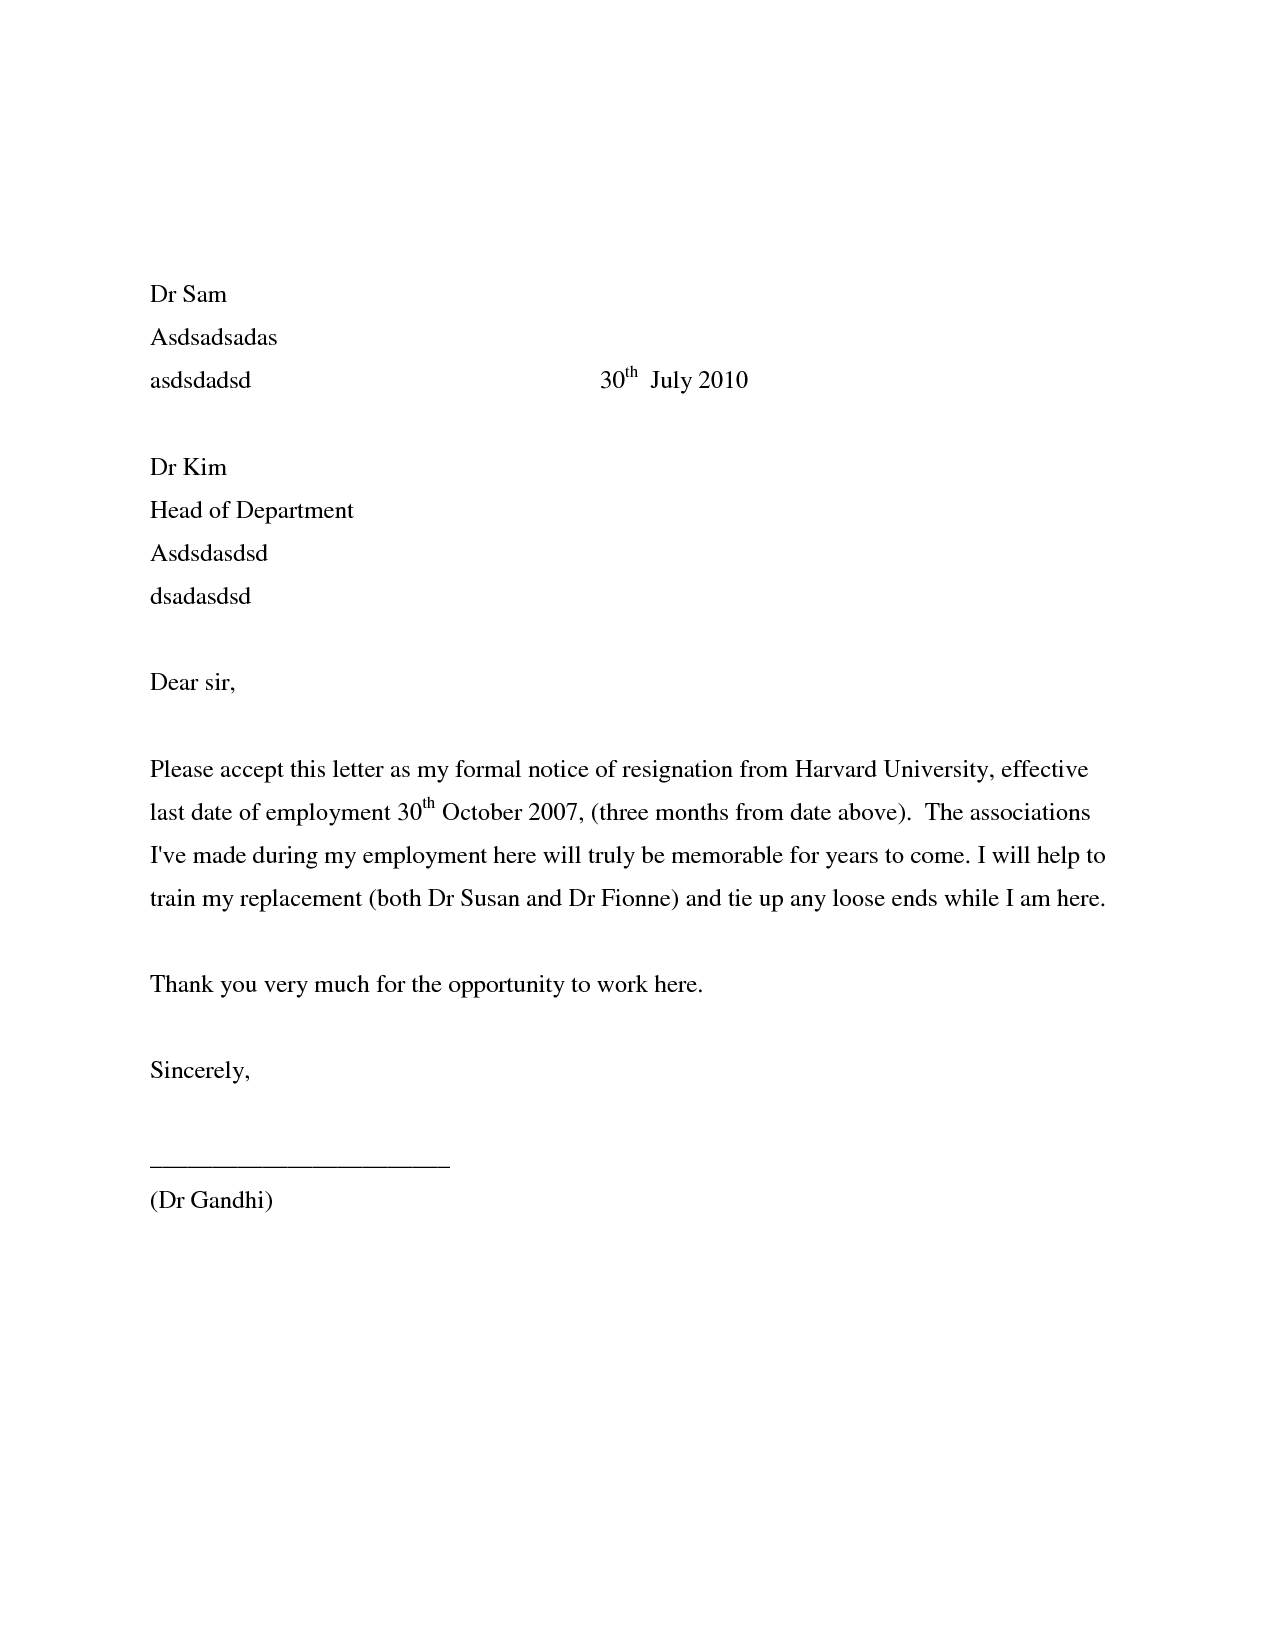 Simple Resignation Letters Examples SeeabruzzoWriting A Letter Of – Sample of Professional Resignation Letter